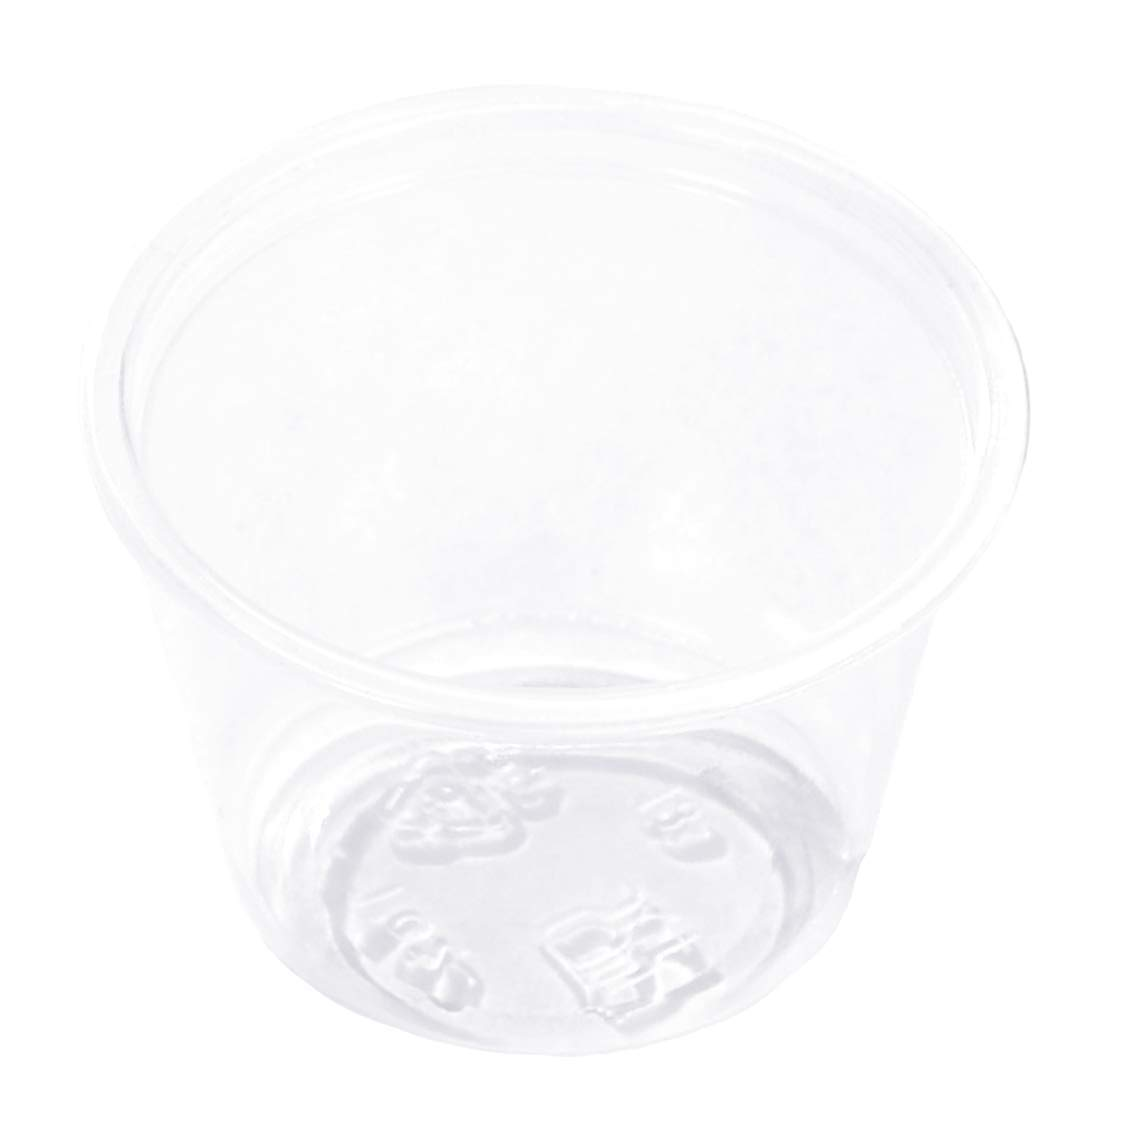 Cheap bargain Daxwell Plastic Portion Cups Polypropylene oz Super popular specialty store Clear 1 PP E